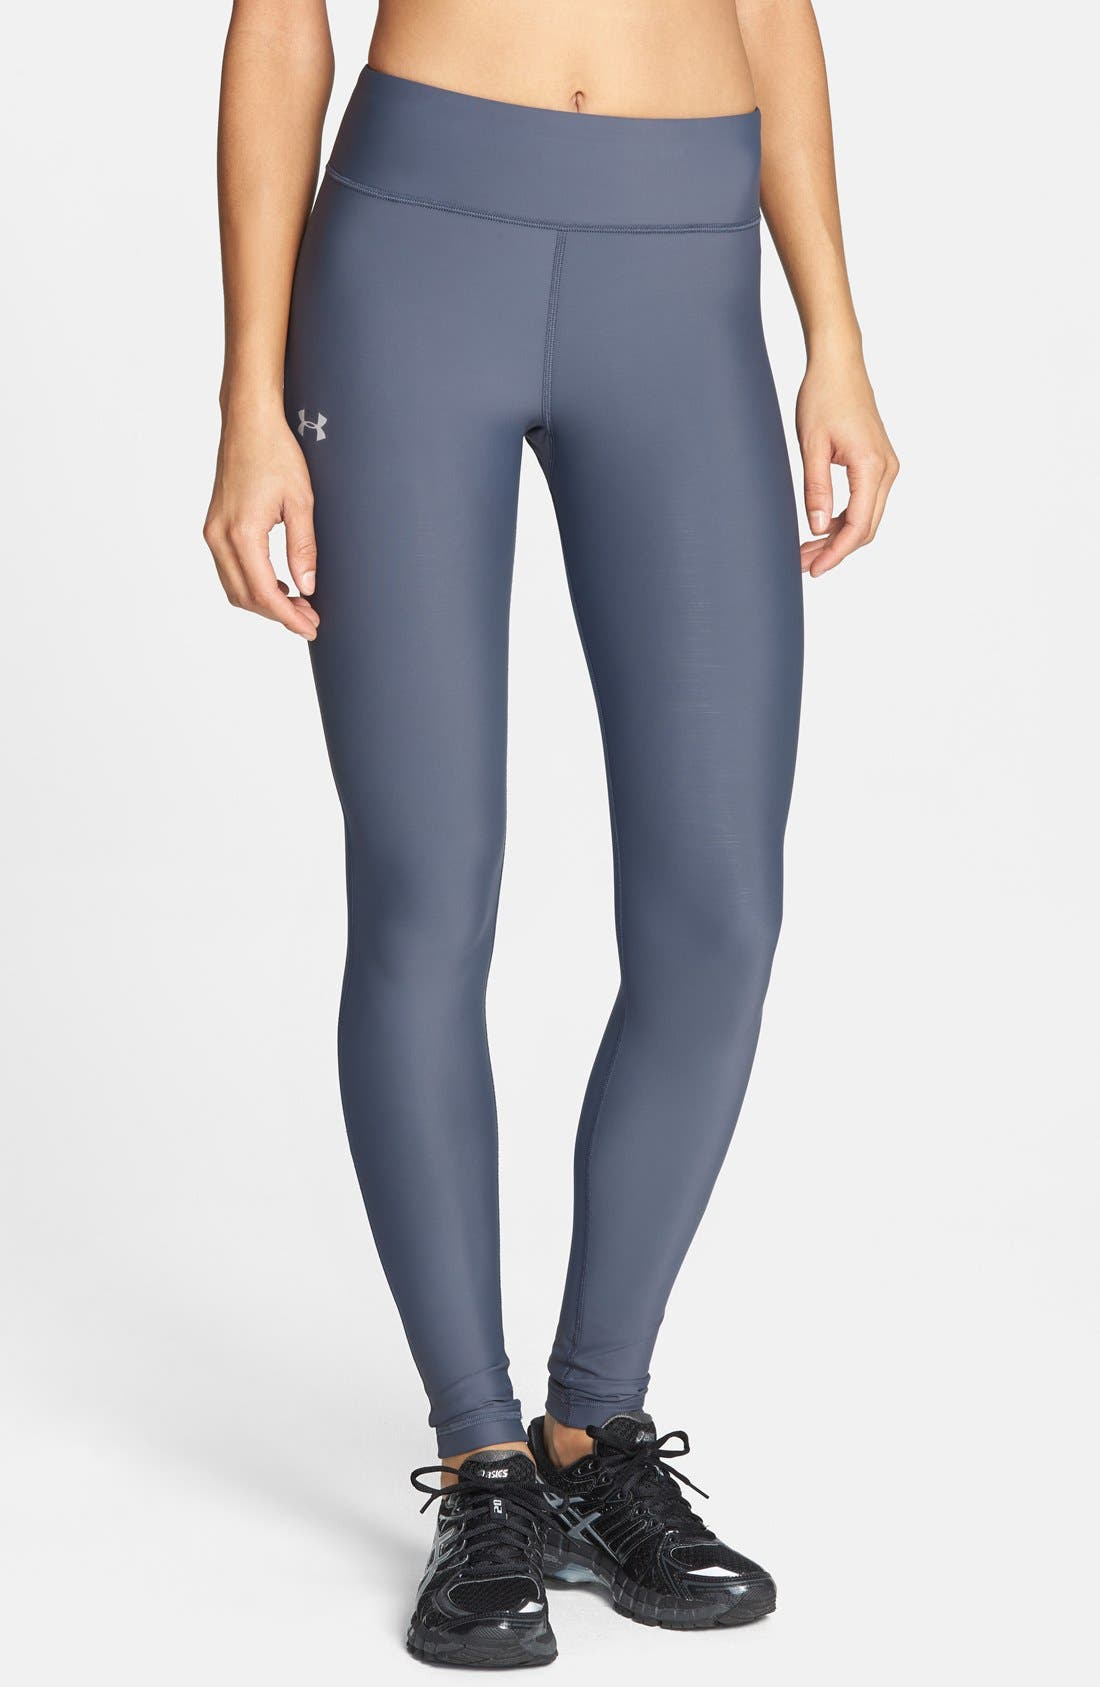 Alternate Image 1 Selected - Under Armour 'Authentic' Compression Tights